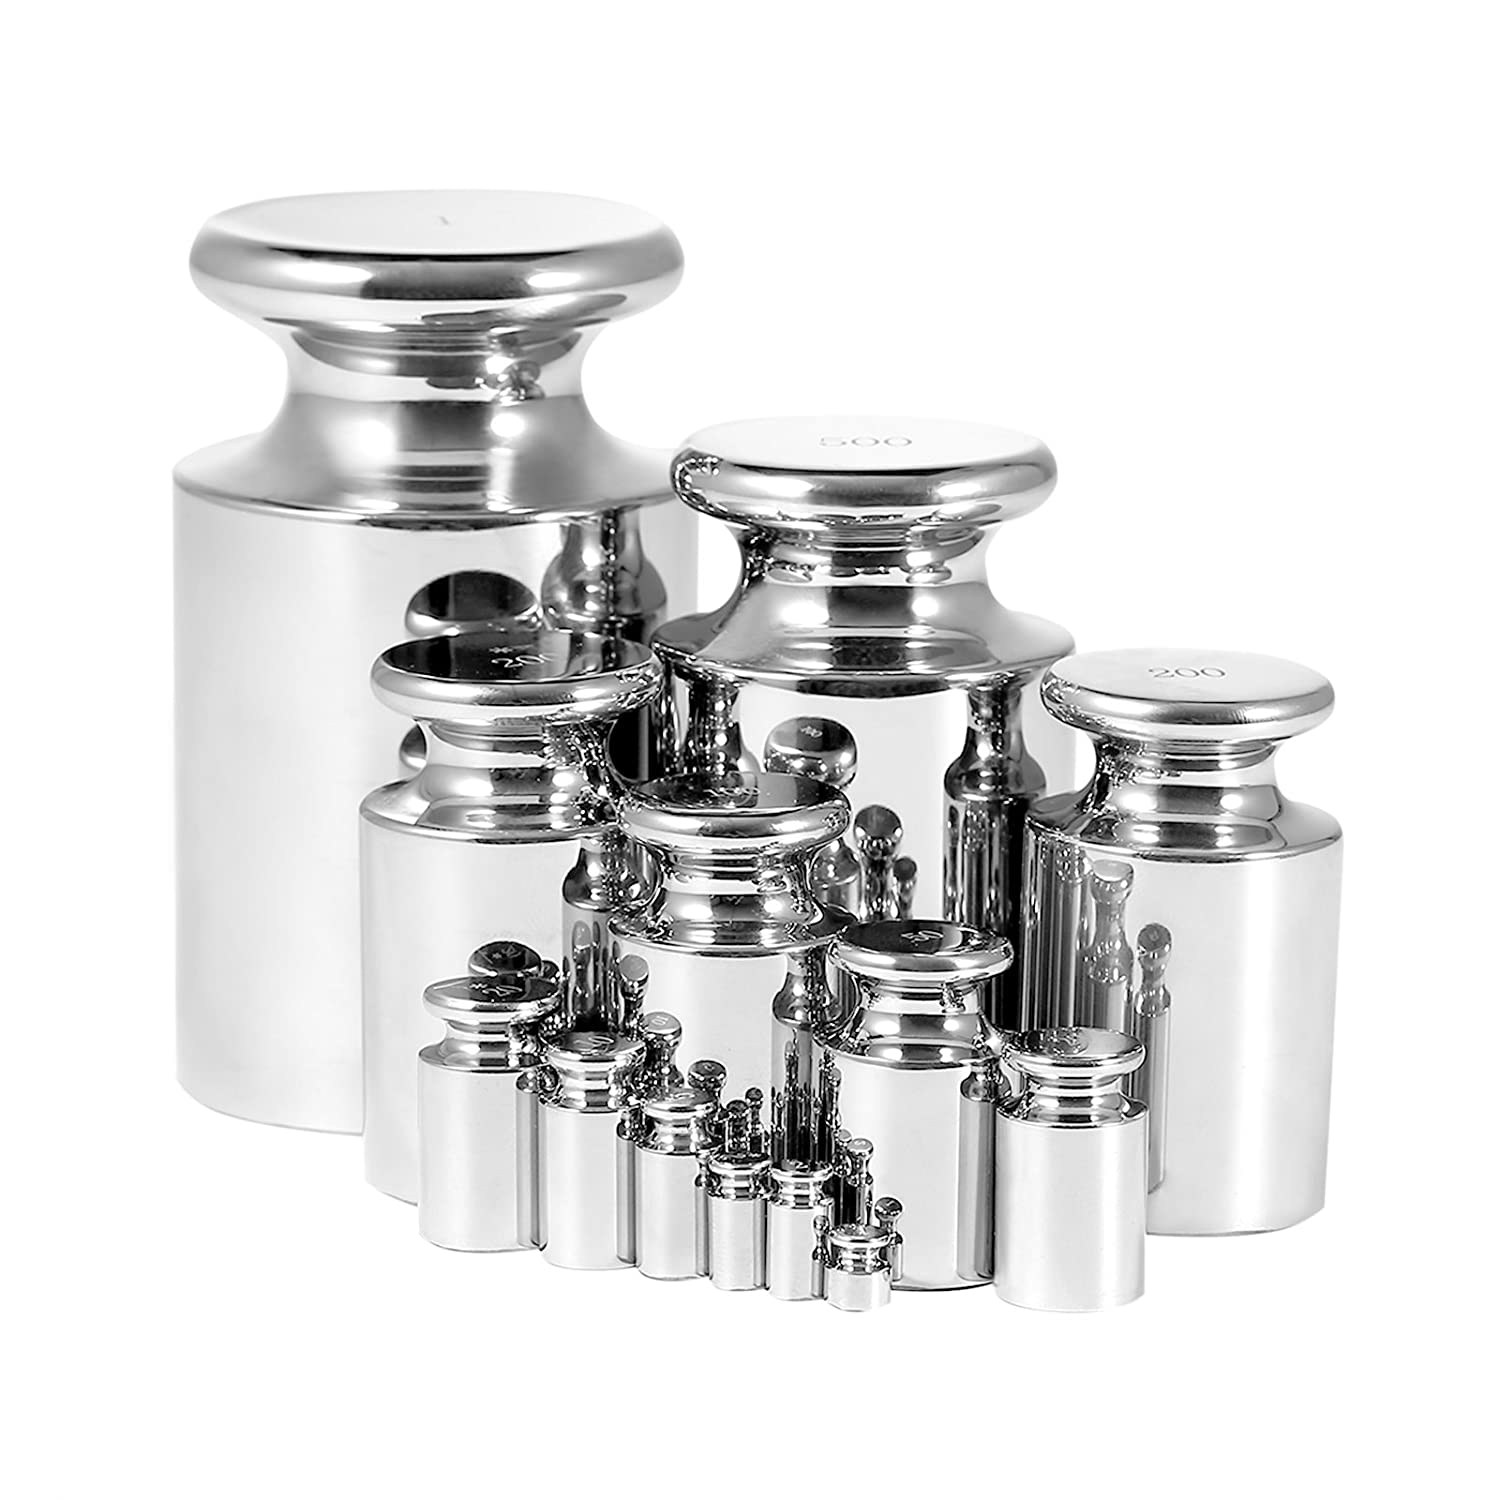 LOVSHARE Calibration Weight F1 Class Scale Calibration Weight Stainless Steel Calibration Weight Set